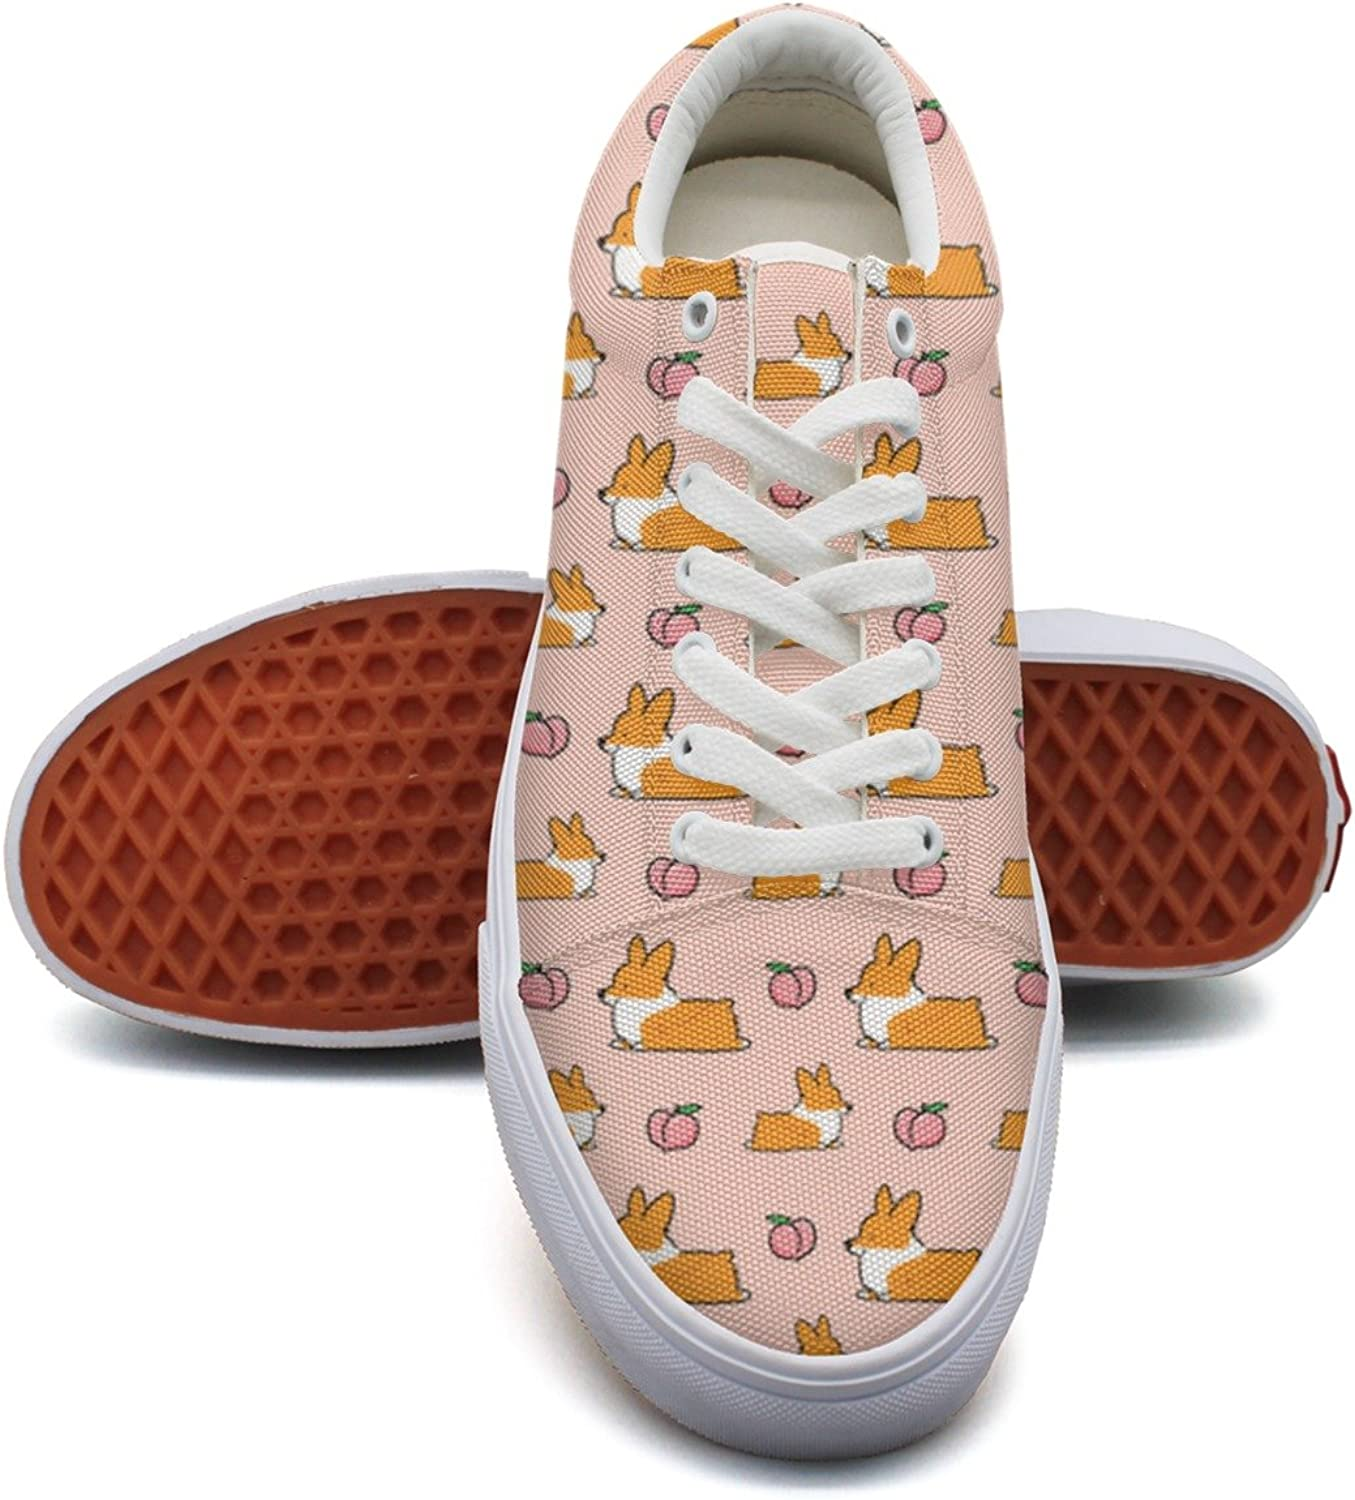 Corgi And Peach Humor Fashion Canvas Sneaker shoes For Womns 3D Printed Low Top Walking shoes